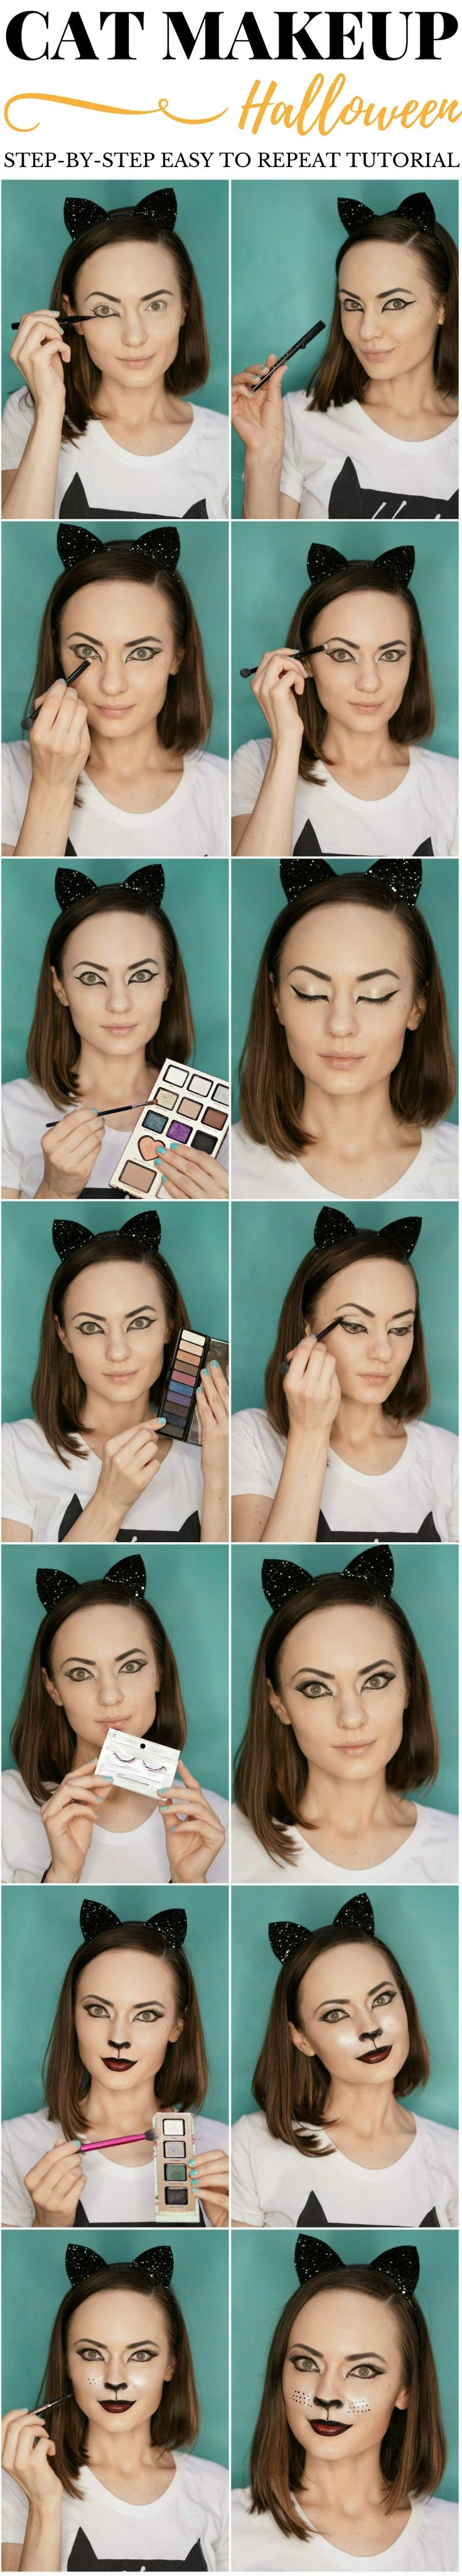 "This Halloween cat makeup tutorial created in collaboration with @FreshStep to raise awareness of cat adoption, eliminate the ""cat lady"" stigma that is associated with adopting a cat, and inspire people from all over the world to share their feline-inspired looks. #HotToAdopt #ad"